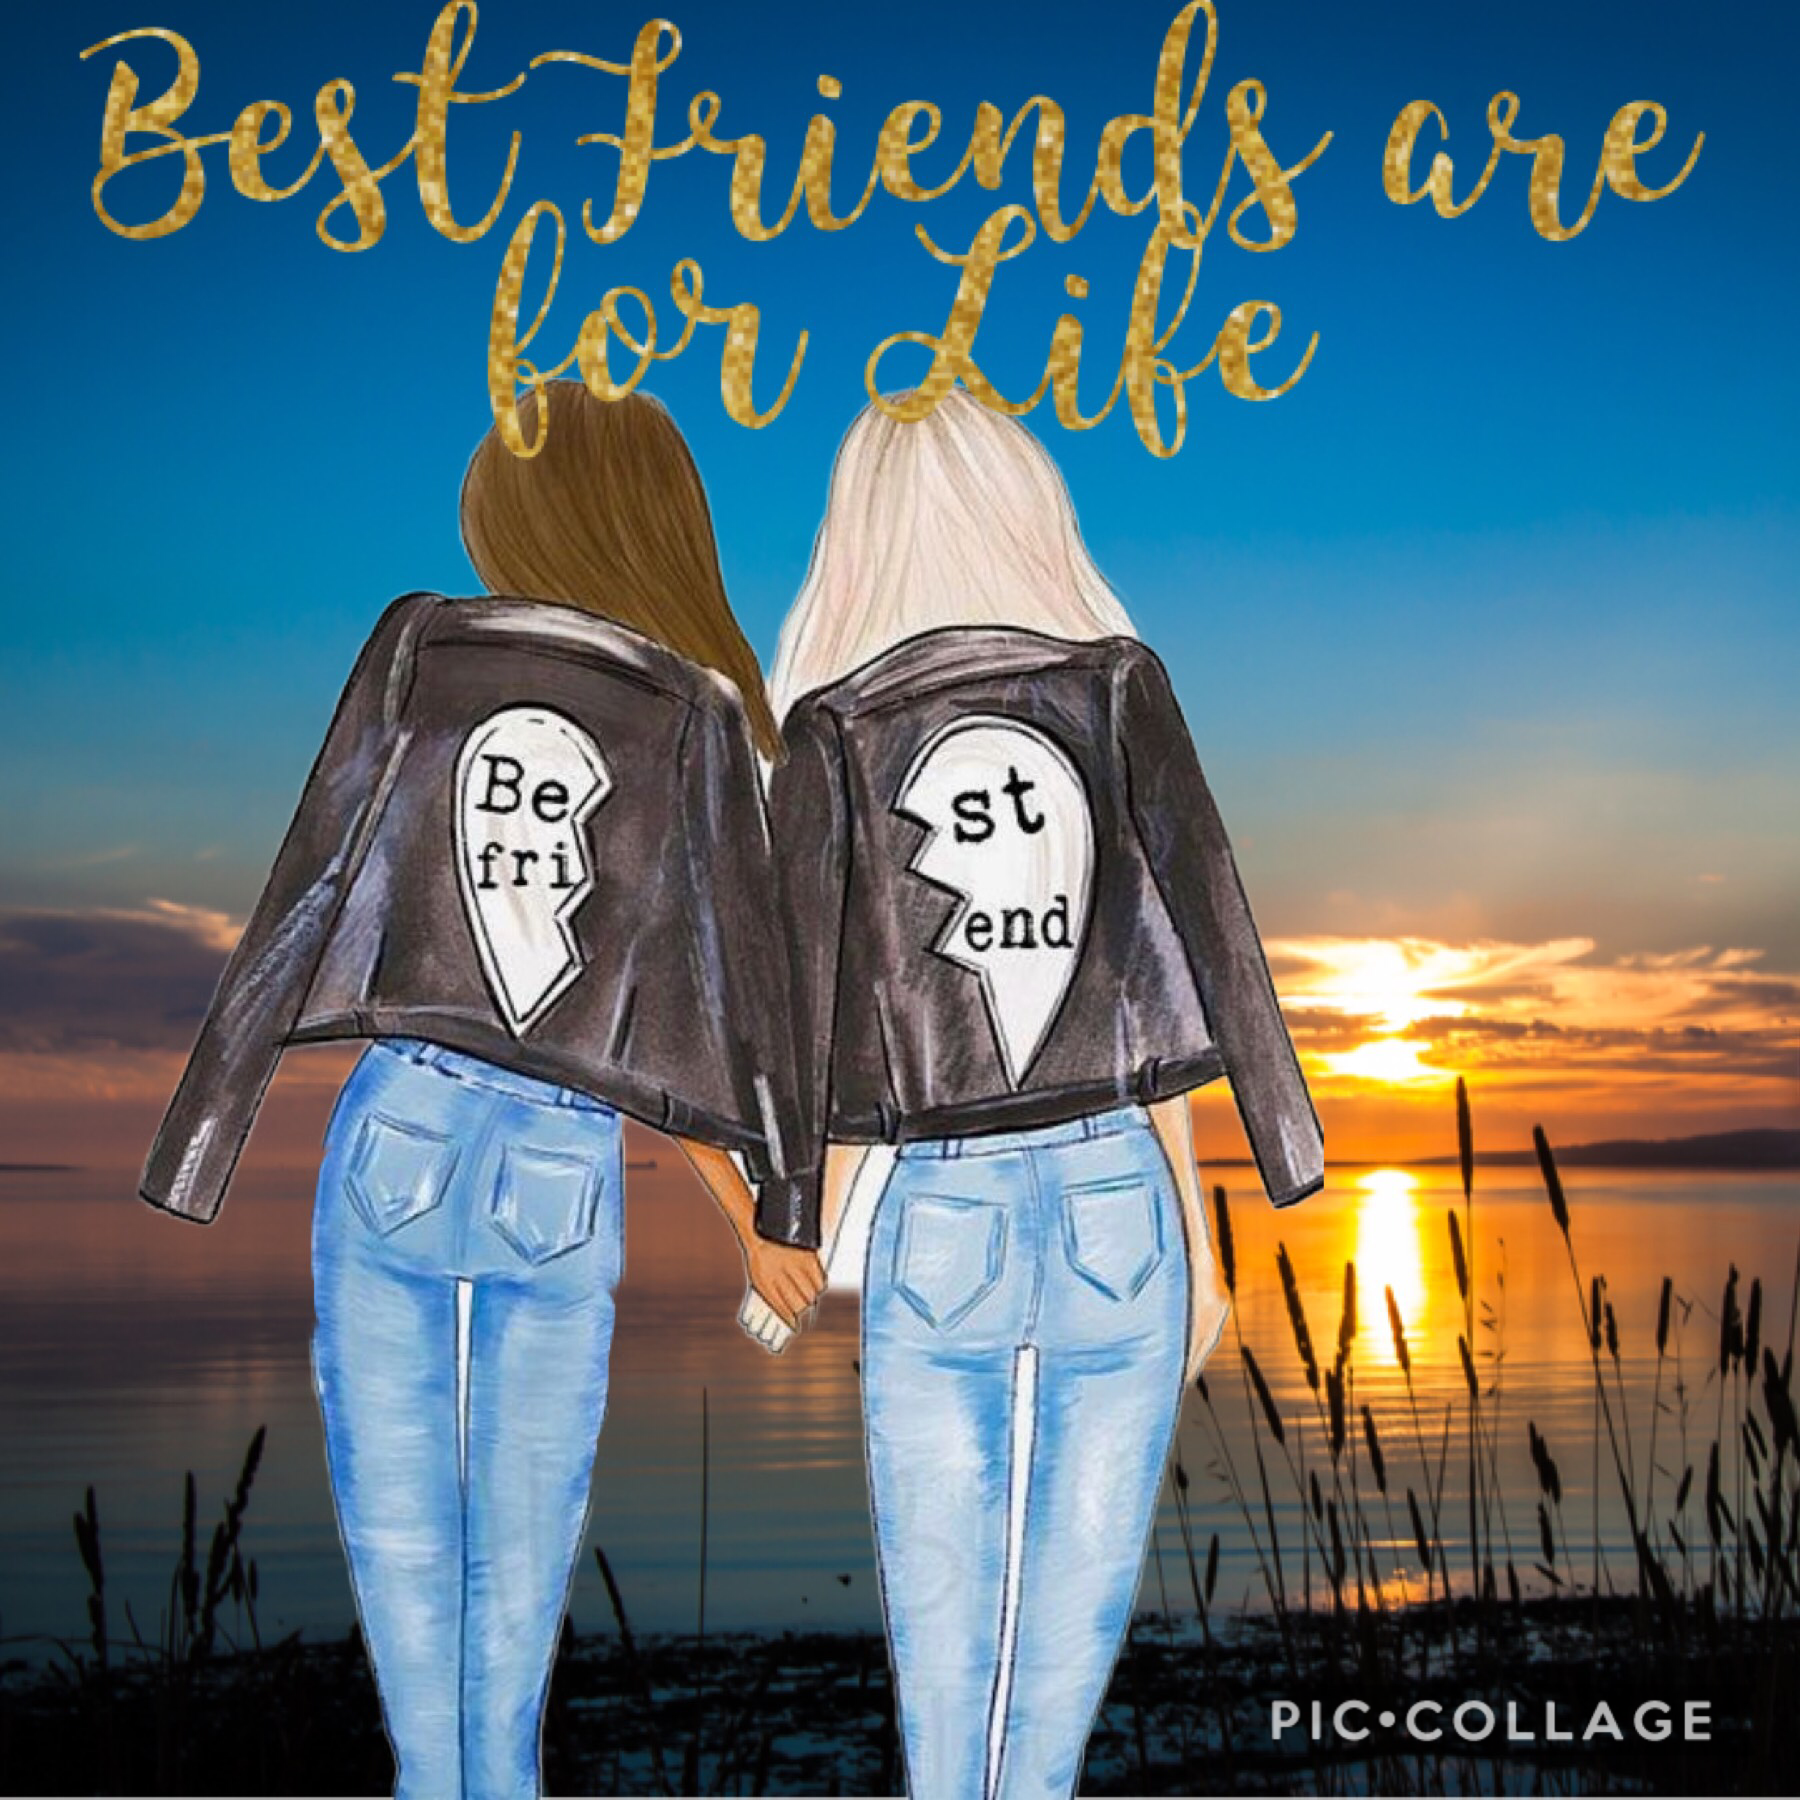 Best Friends are for Life so Savor Every Moment!!